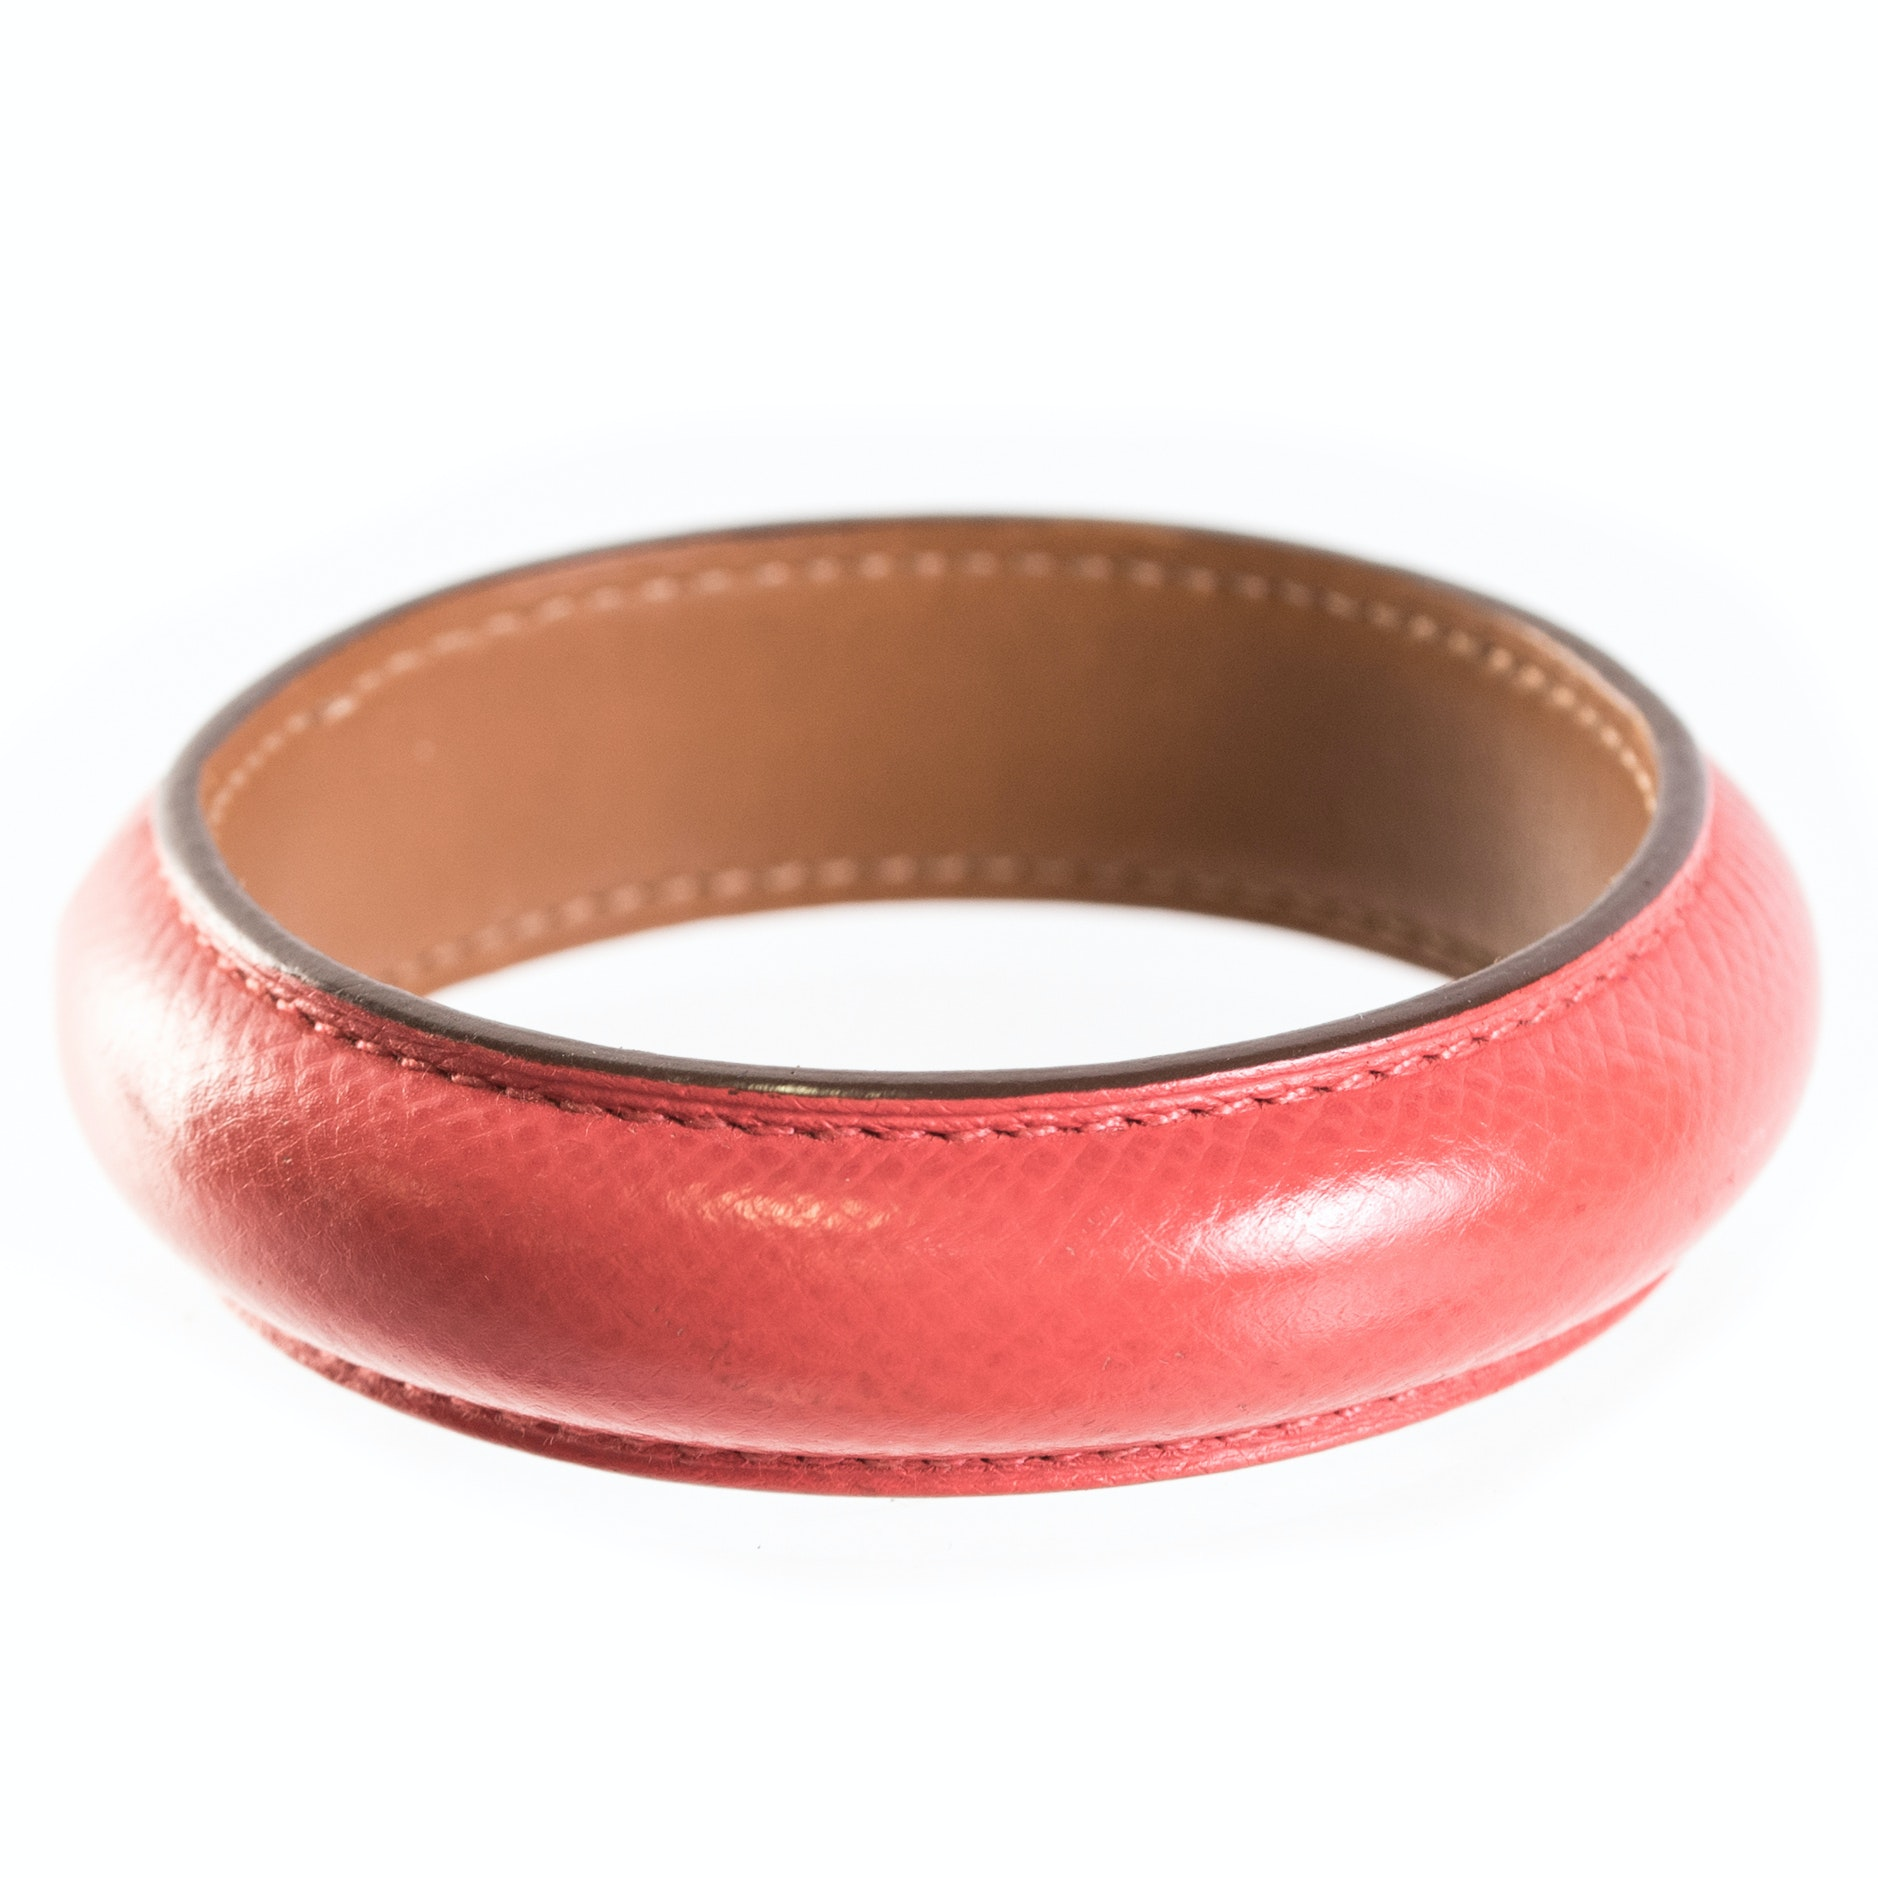 Hermès Paris Leather Bangle Bracelet